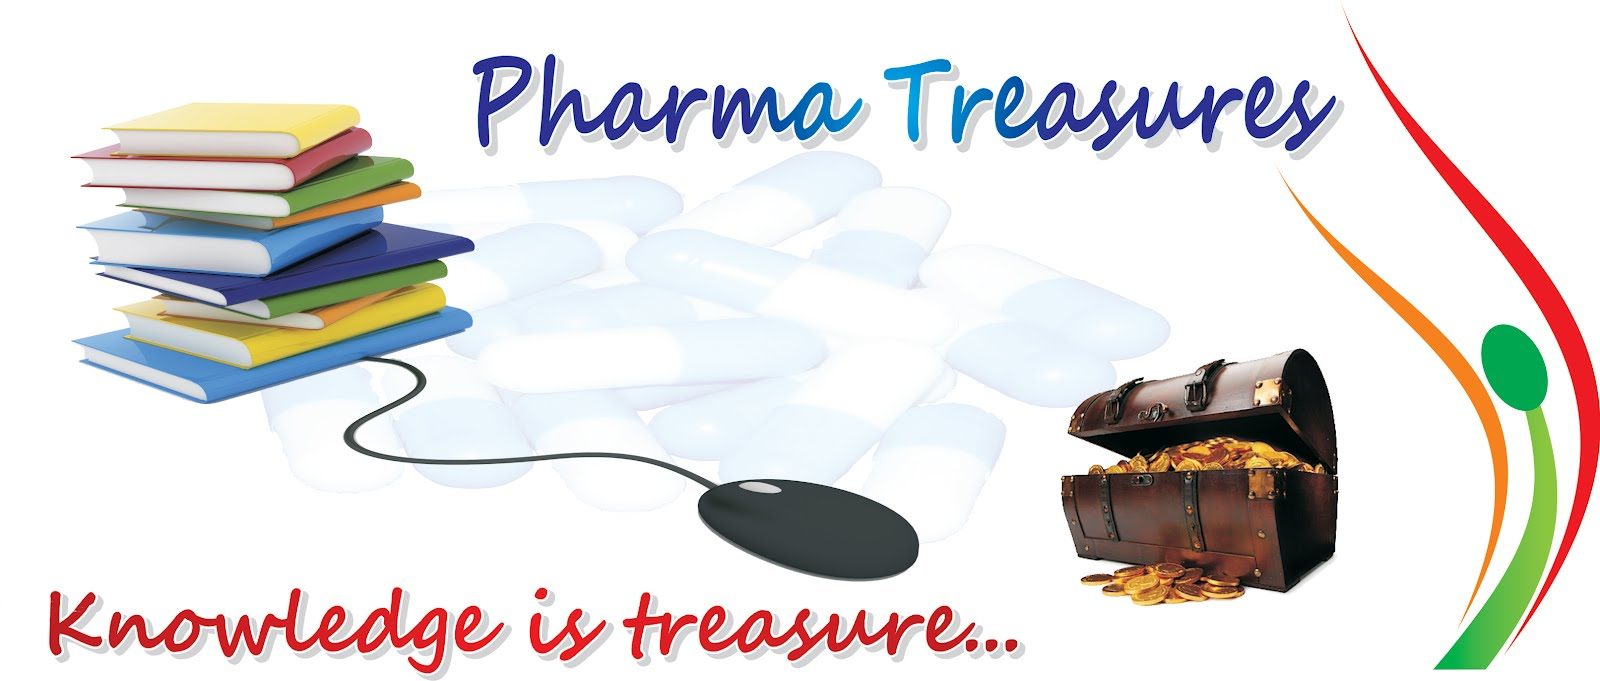 Pharma Treasures: What is the difference between dissolution